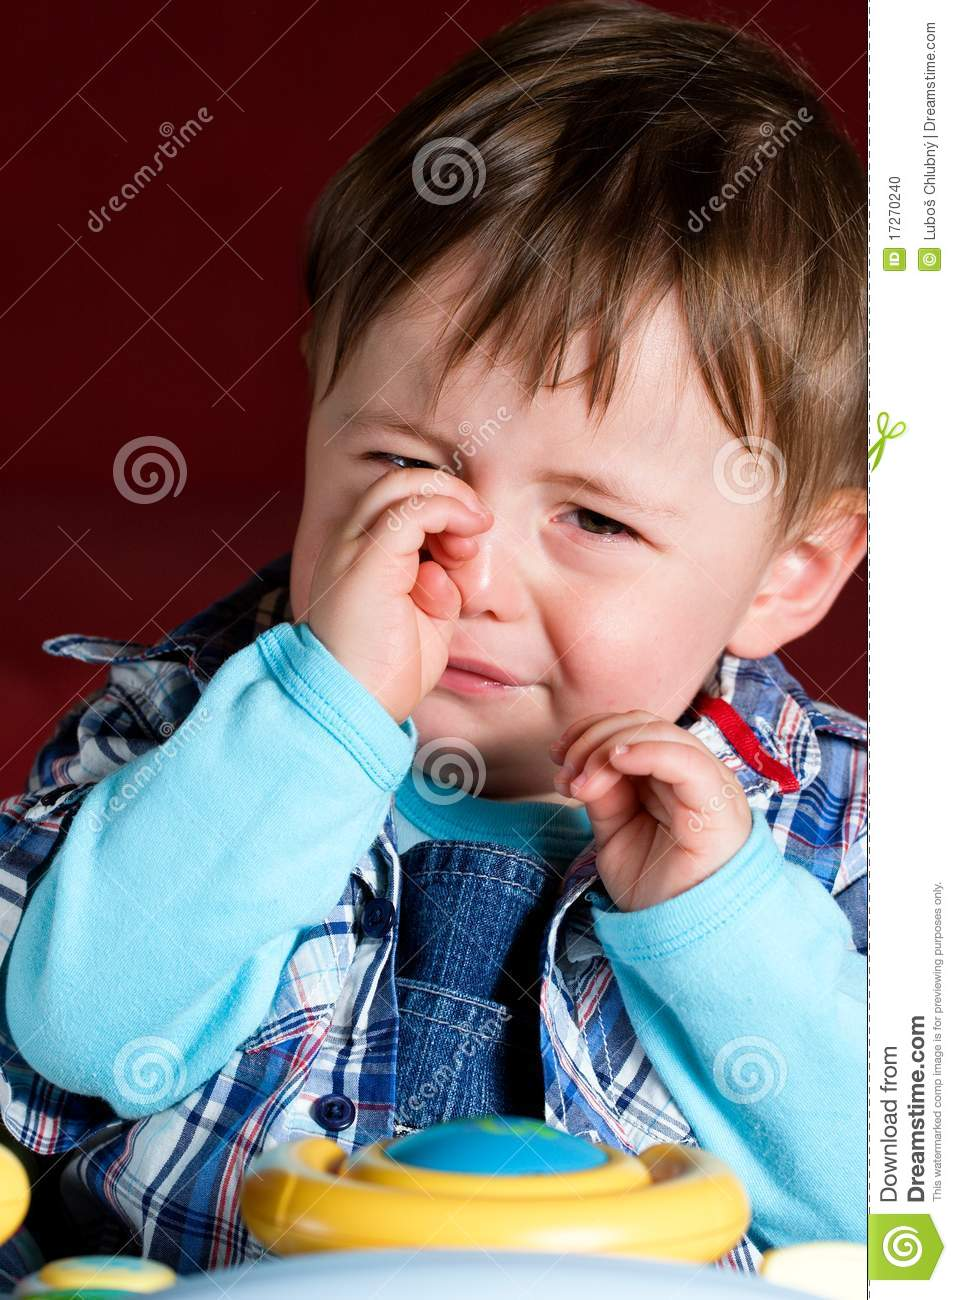 Crying Baby Boy Stock Photo - Image: 17270240